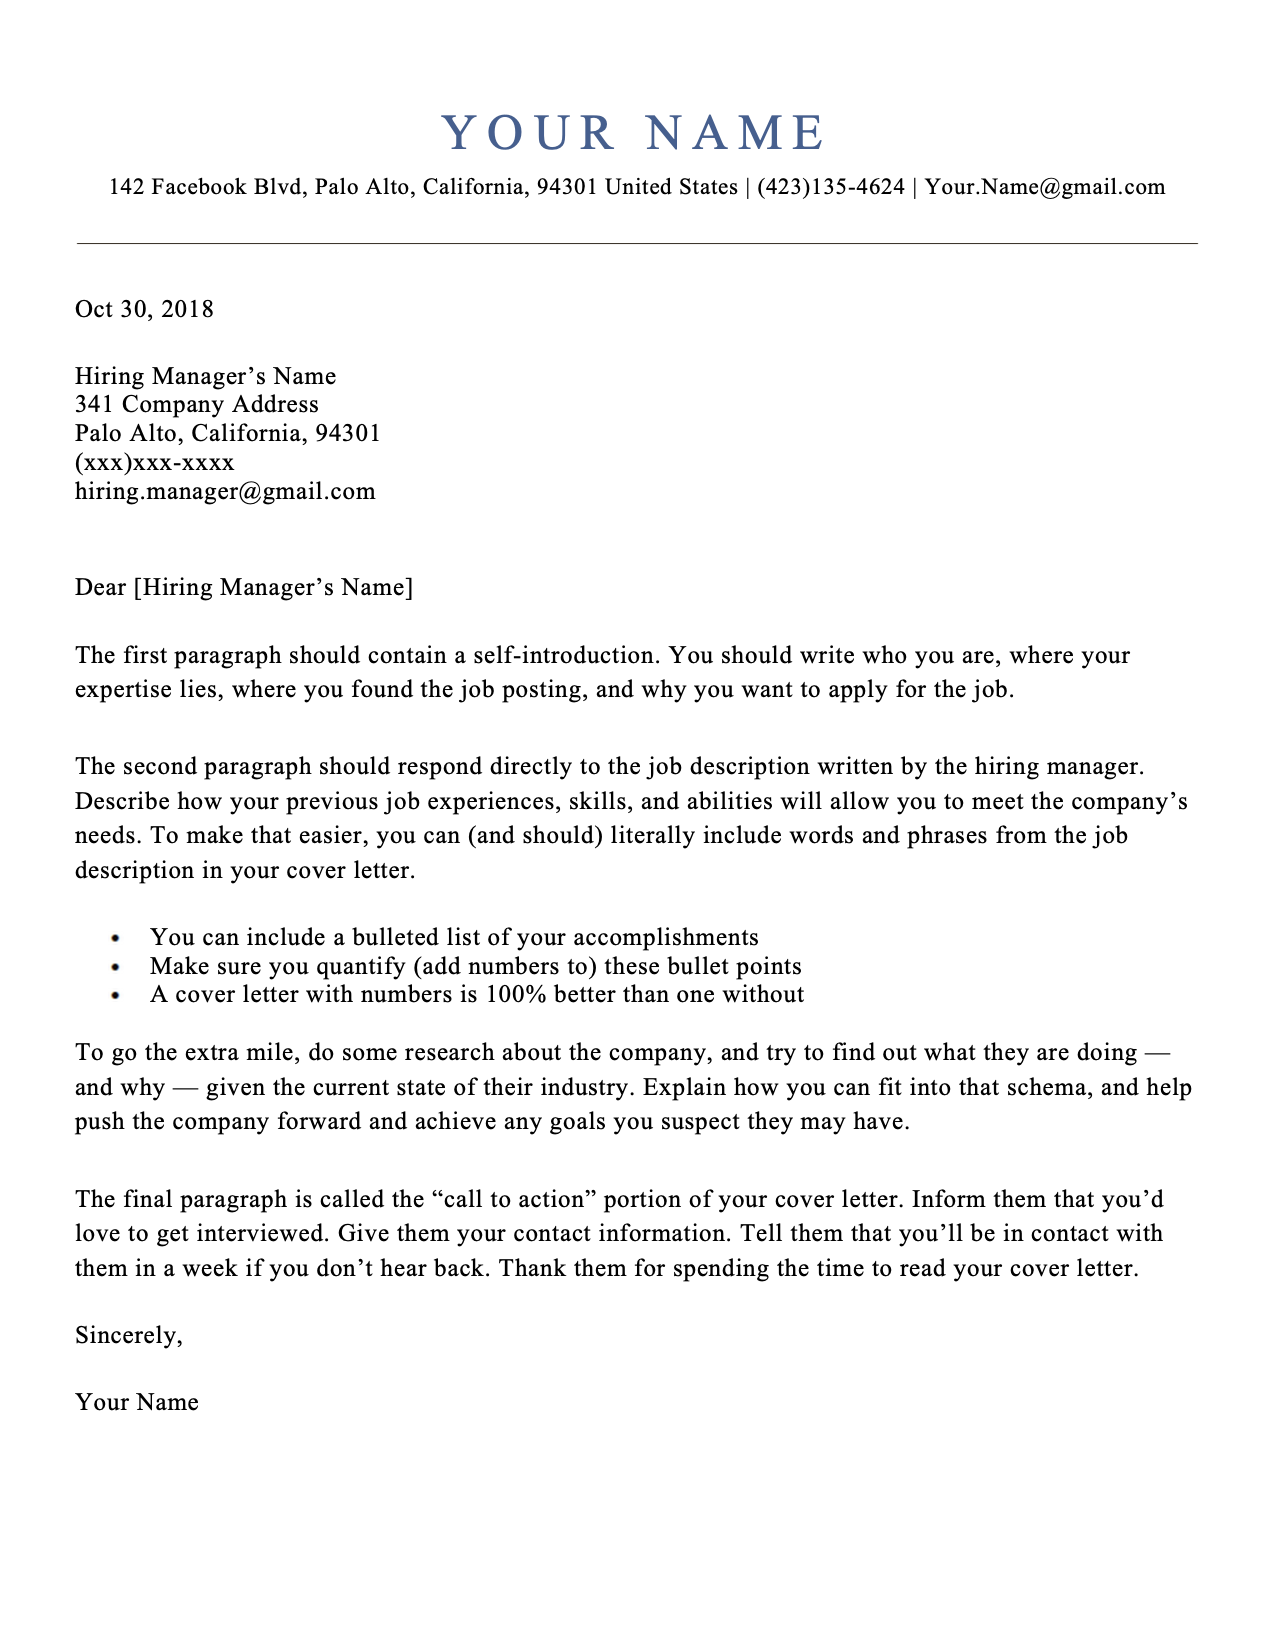 simple cover letter templates template resume format for telecom experience ceo examples 2019 bpo pdf download